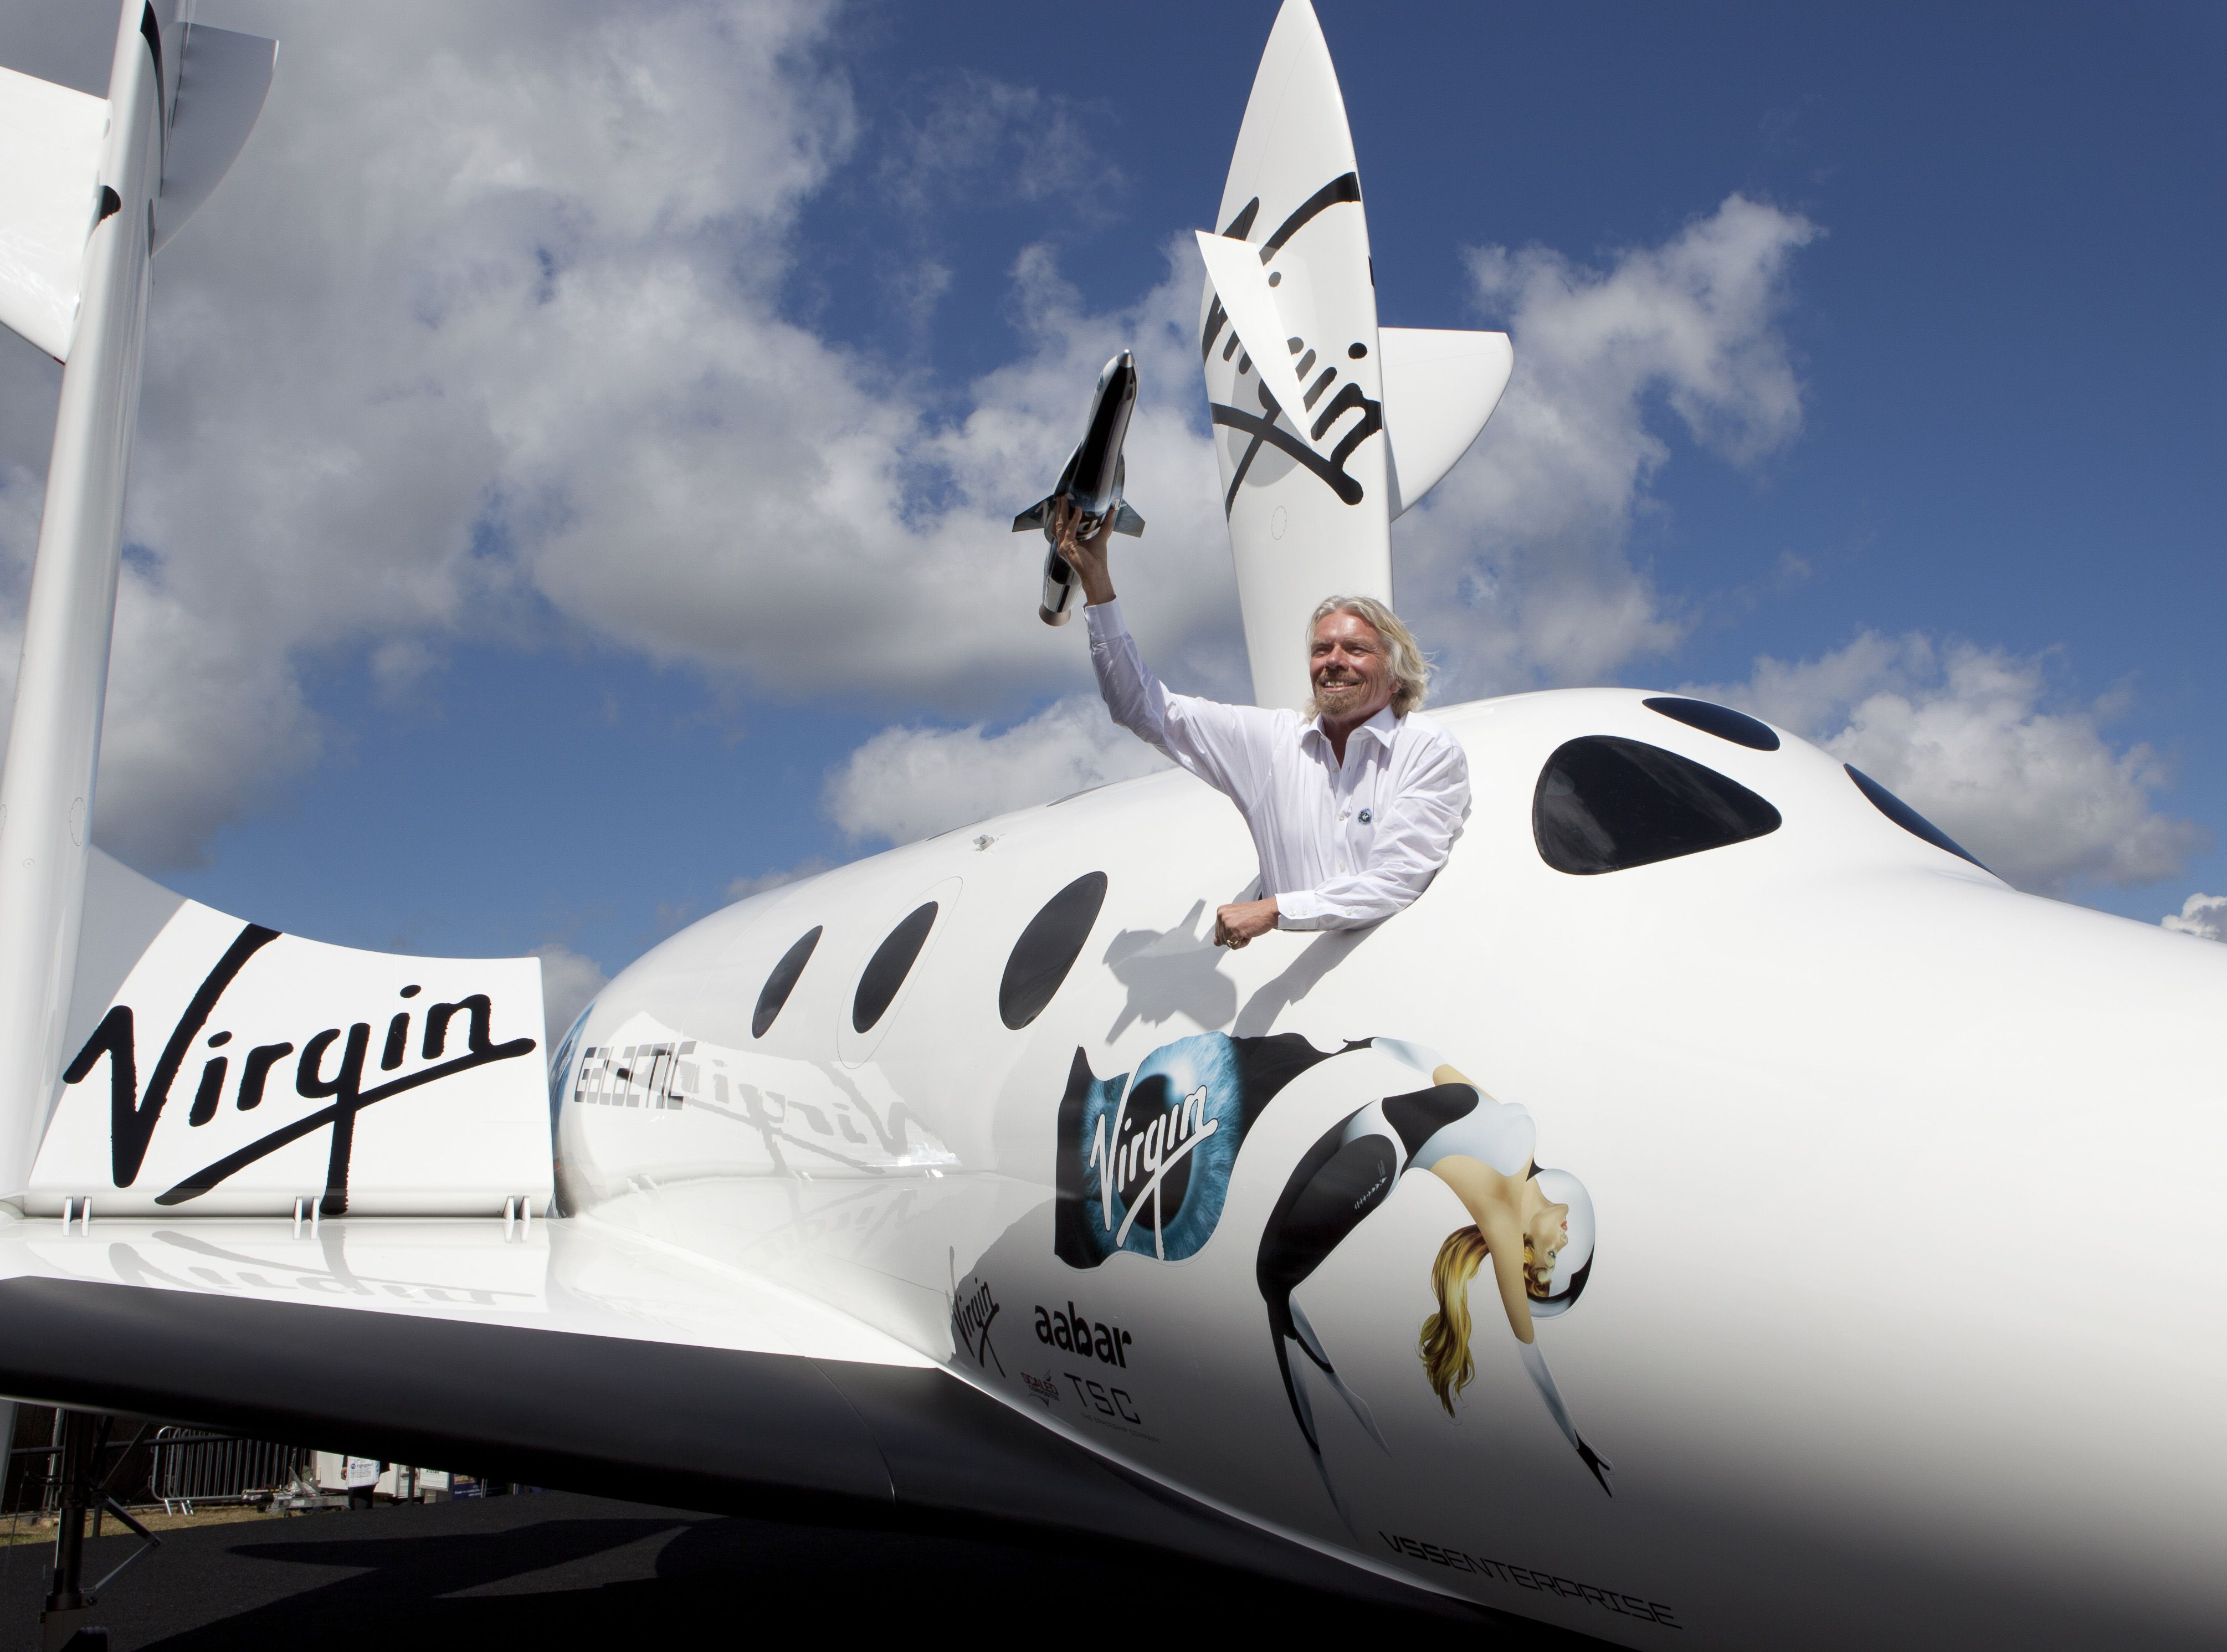 Sir Richard Branson Introduces Launcherone To The World Photo By